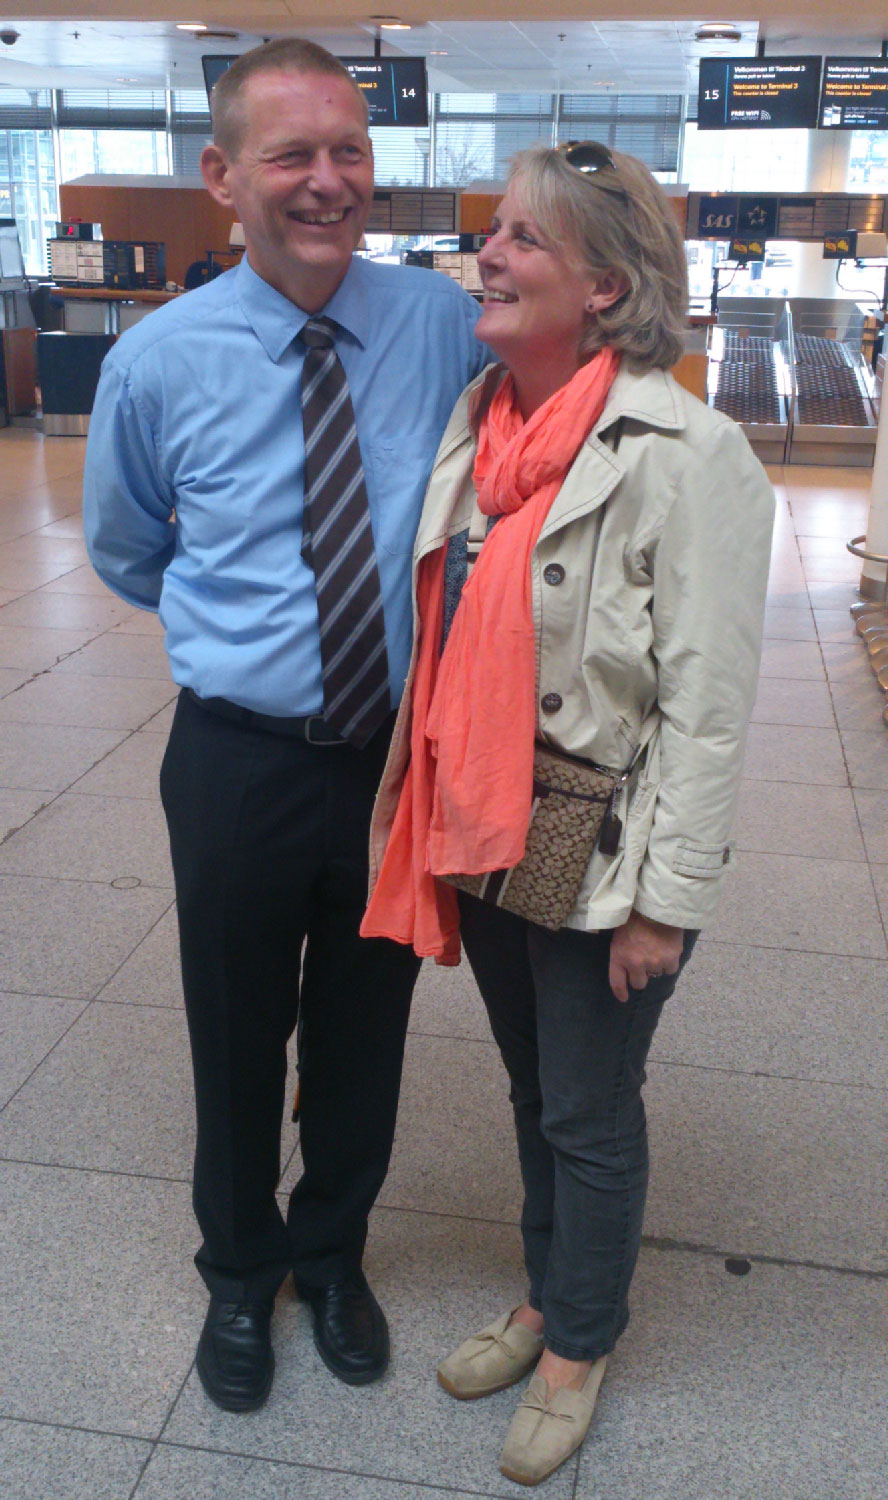 Copenhagen Airport - Kat and Jens (in corporate uniform) Sept 2015